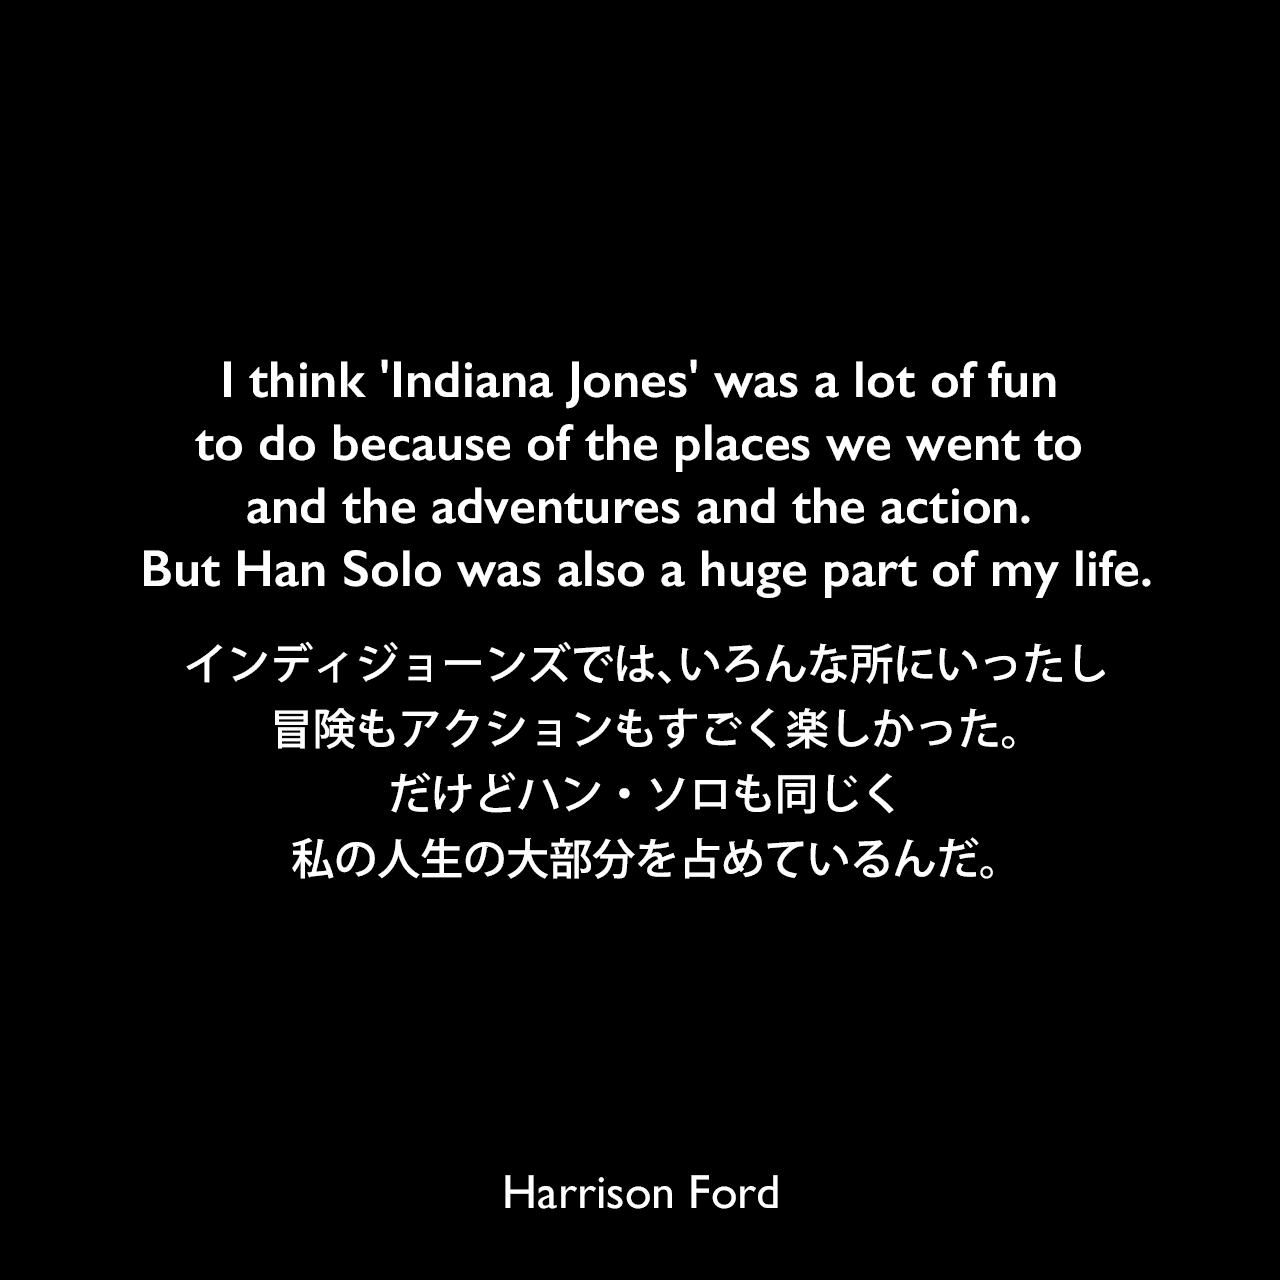 I think 'Indiana Jones' was a lot of fun to do because of the places we went to and the adventures and the action. But Han Solo was also a huge part of my life.インディジョーンズでは、いろんな所にいったし、冒険もアクションもすごく楽しかった。だけどハン・ソロも同じく私の人生の大部分を占めているんだ。Harrison Ford